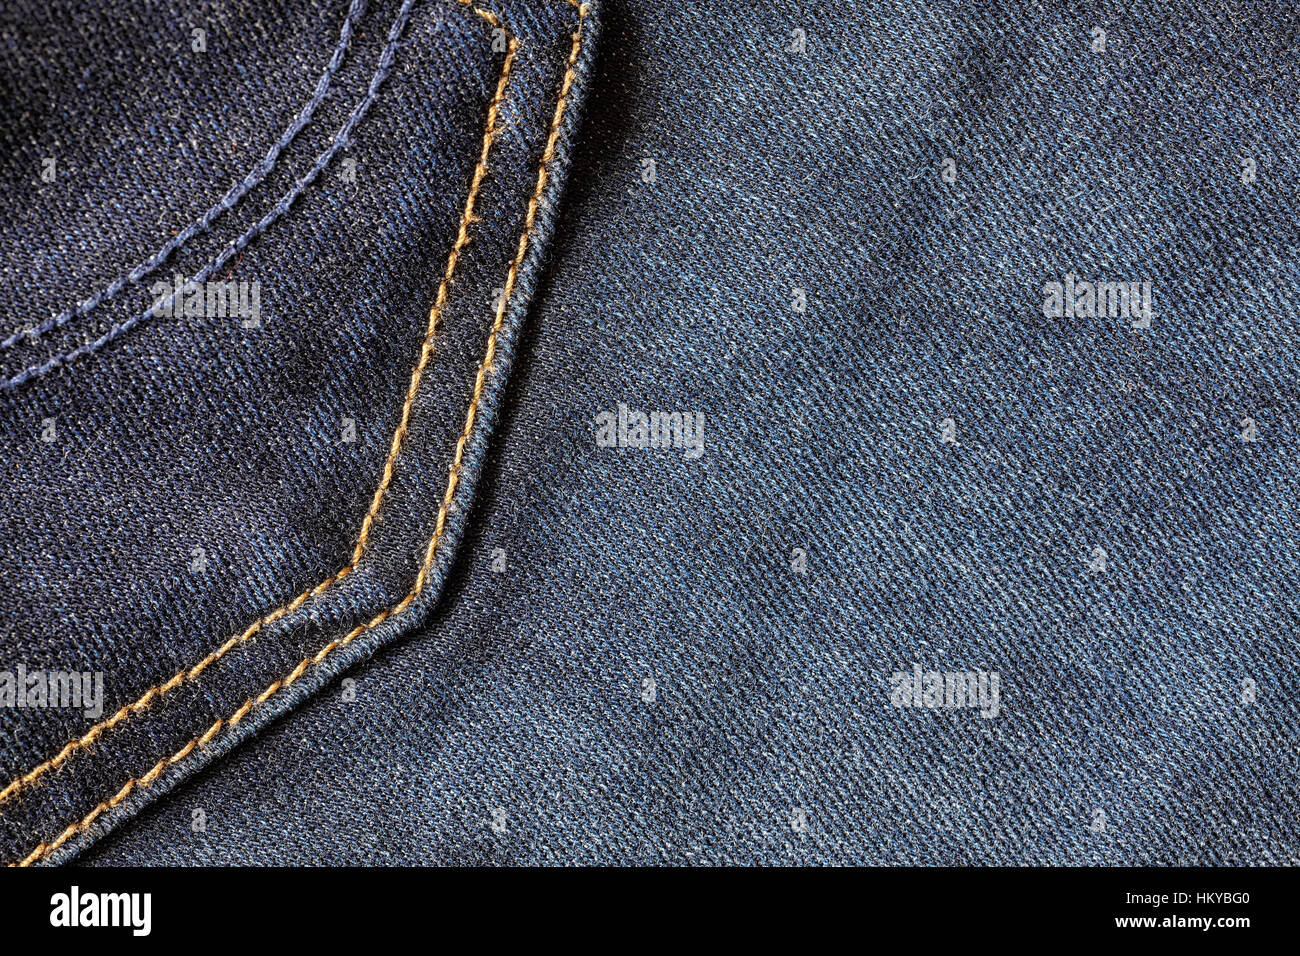 Close up picture of blue jeans fabric with stitches, selective focus, background or texture. - Stock Image